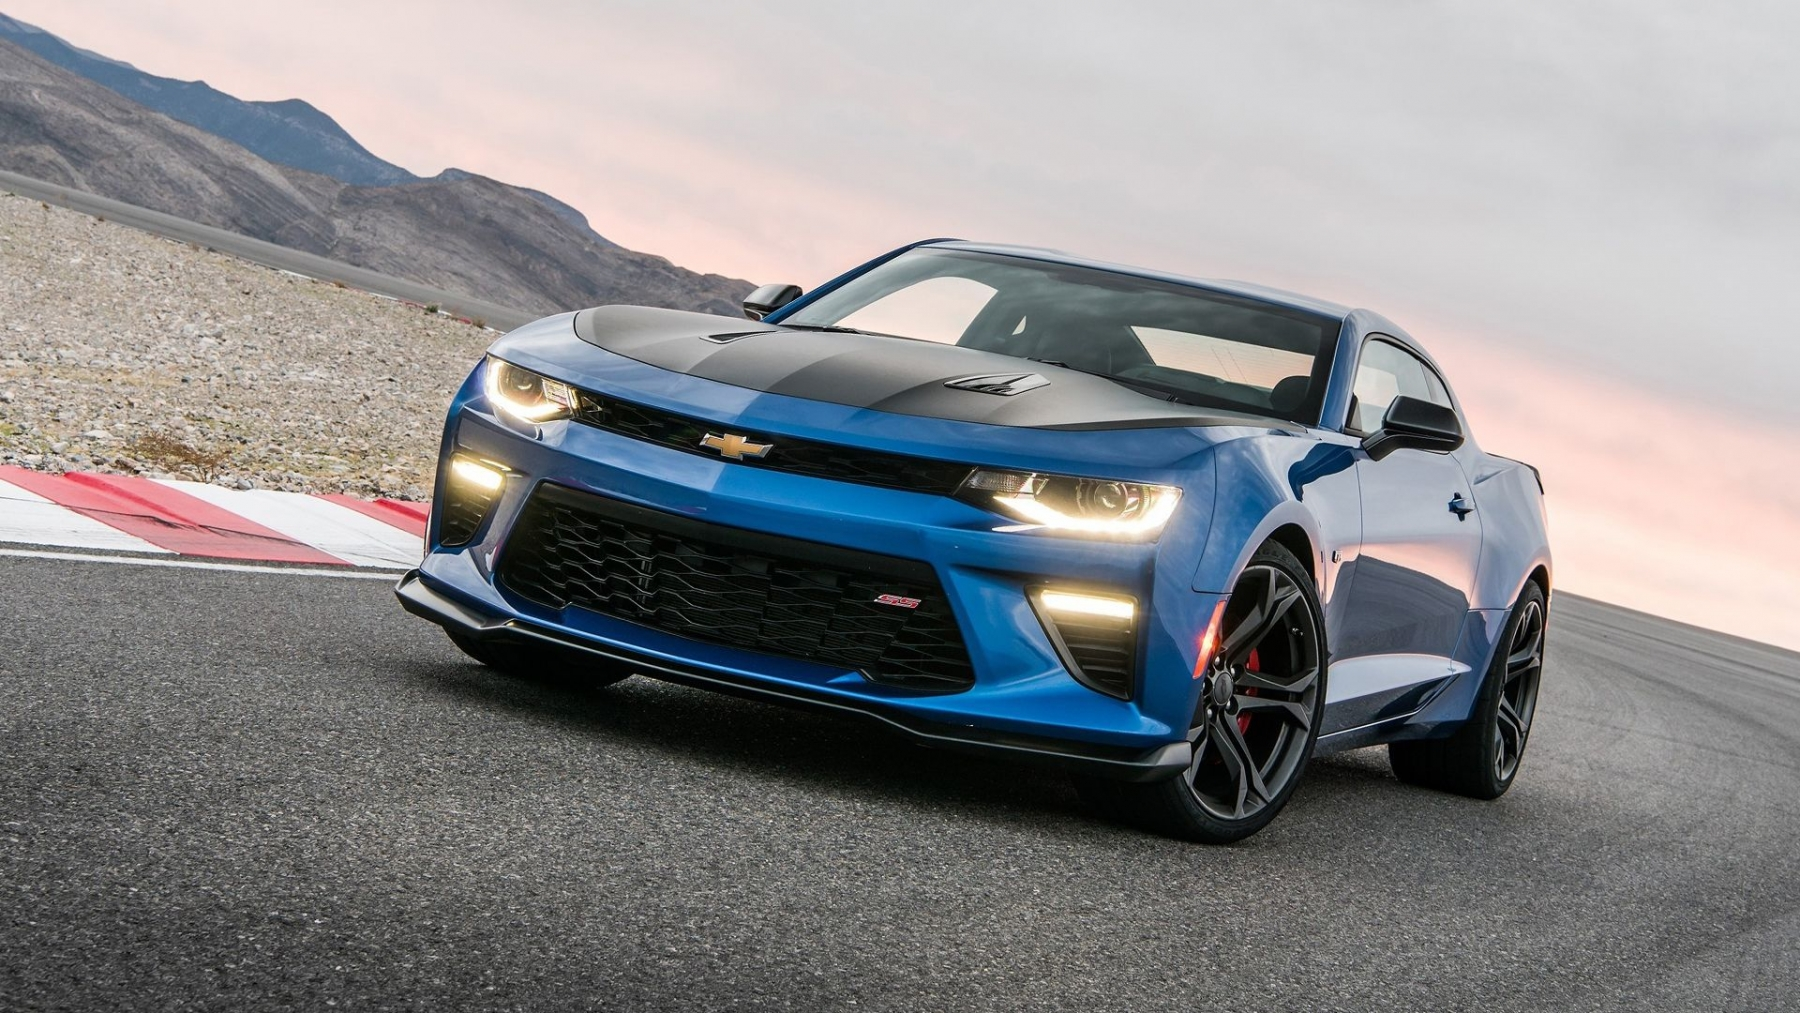 2019 Chevrolet Camaro HD Wallpapers | Background Images ...